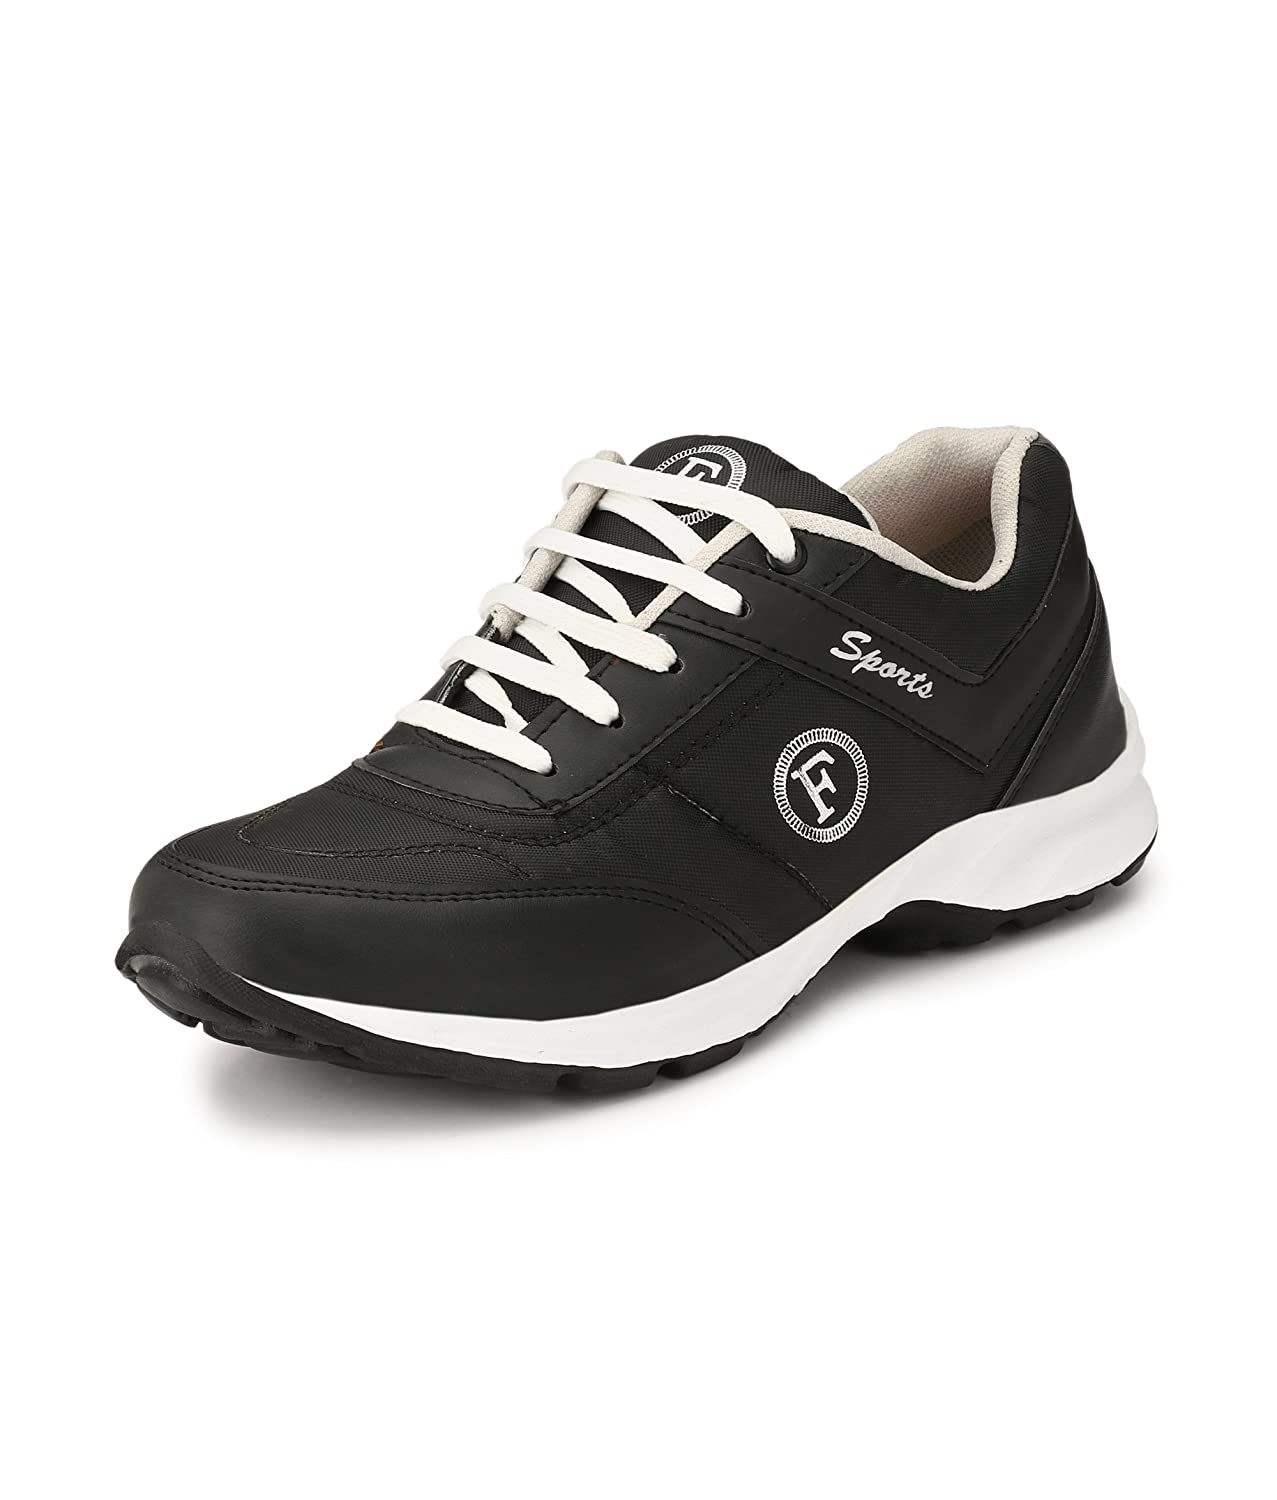 85938c911a6ba1 FUCASSO Men s Synthetic Black Sports Shoes (10 UK)  Buy Online at Low  Prices in India - Amazon.in